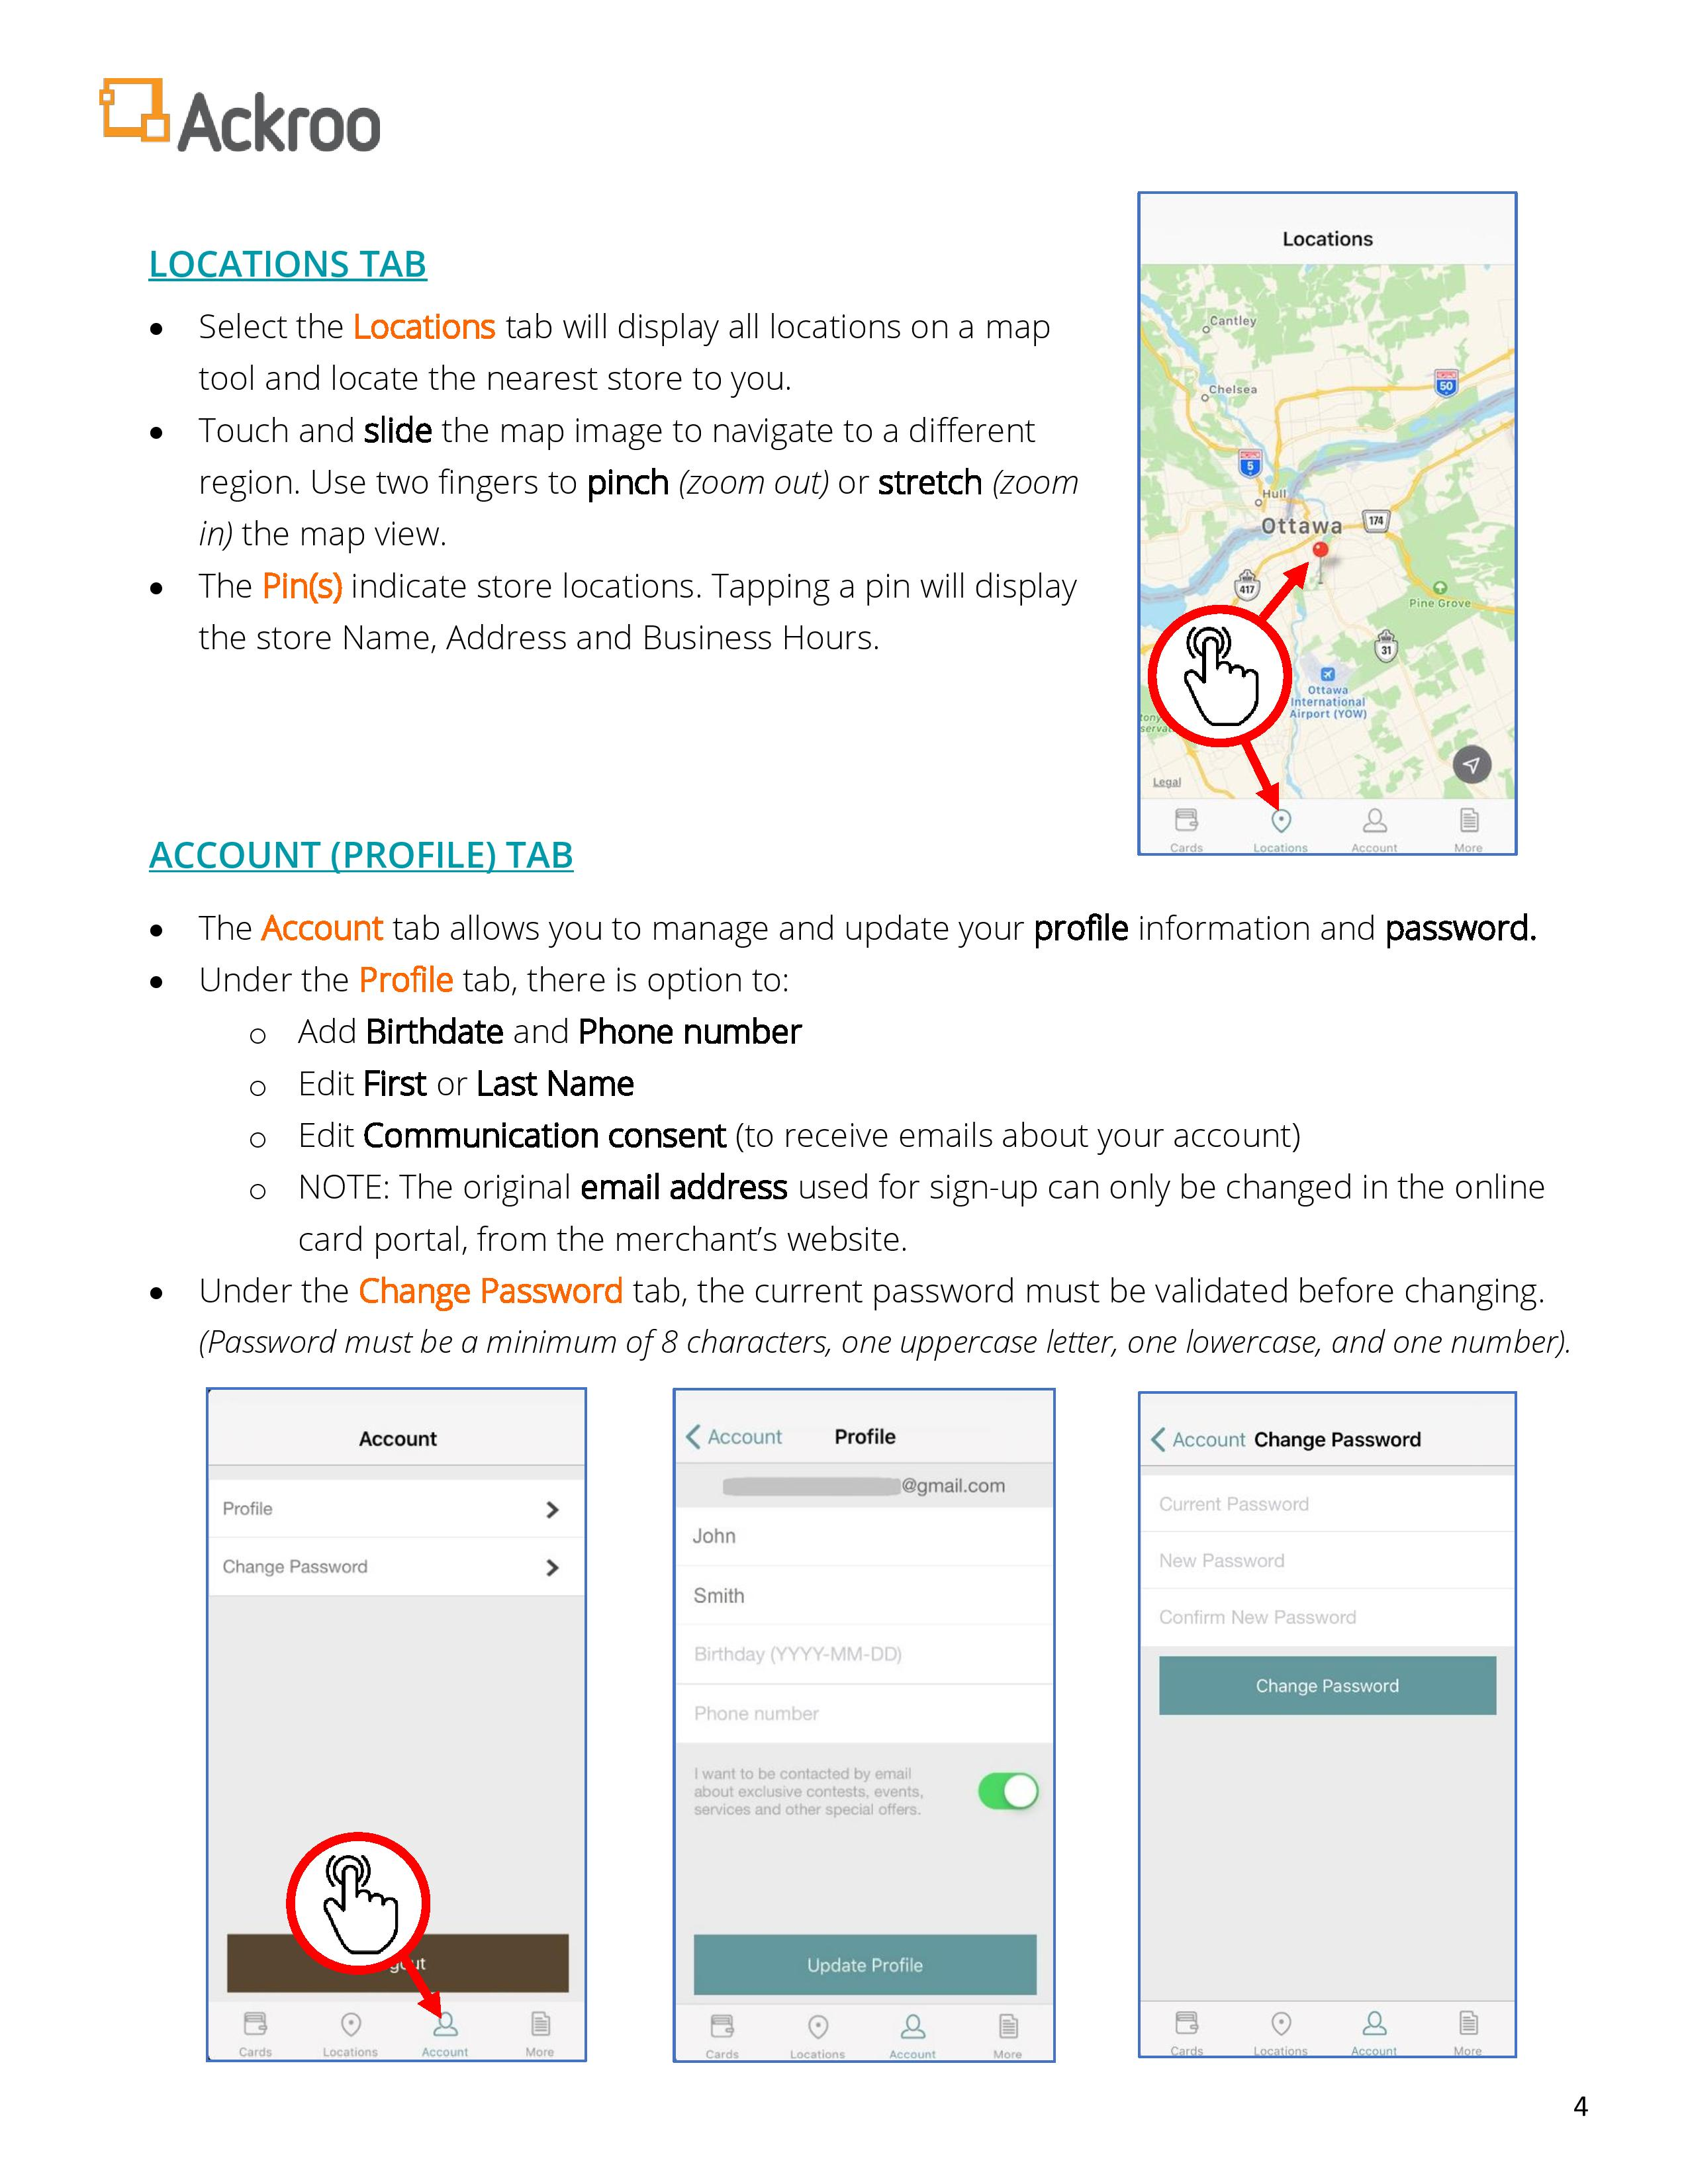 Ackroo_Mobile_App_-_How-To_Navigate-page-004.jpg